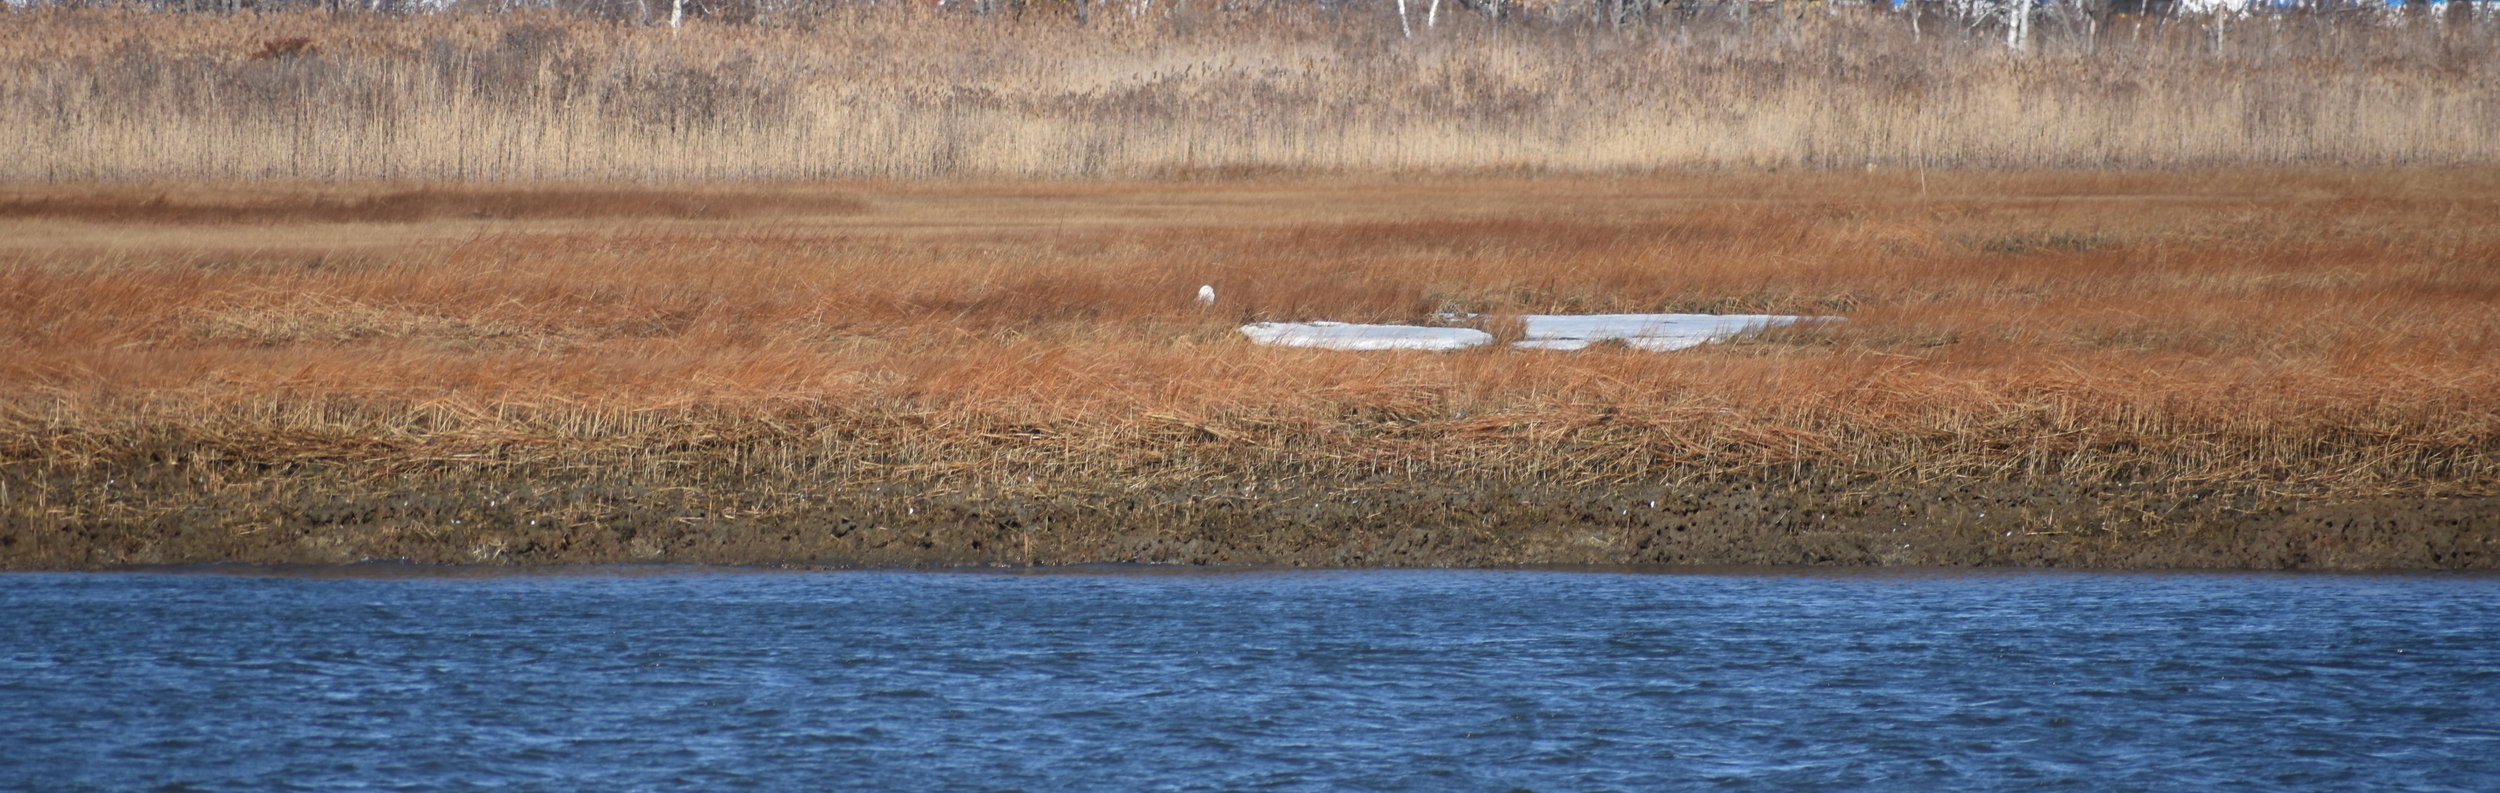 Snowy Owl is white spot in middle of photo, imagine how difficult it would be to spot if ground were covered in snow